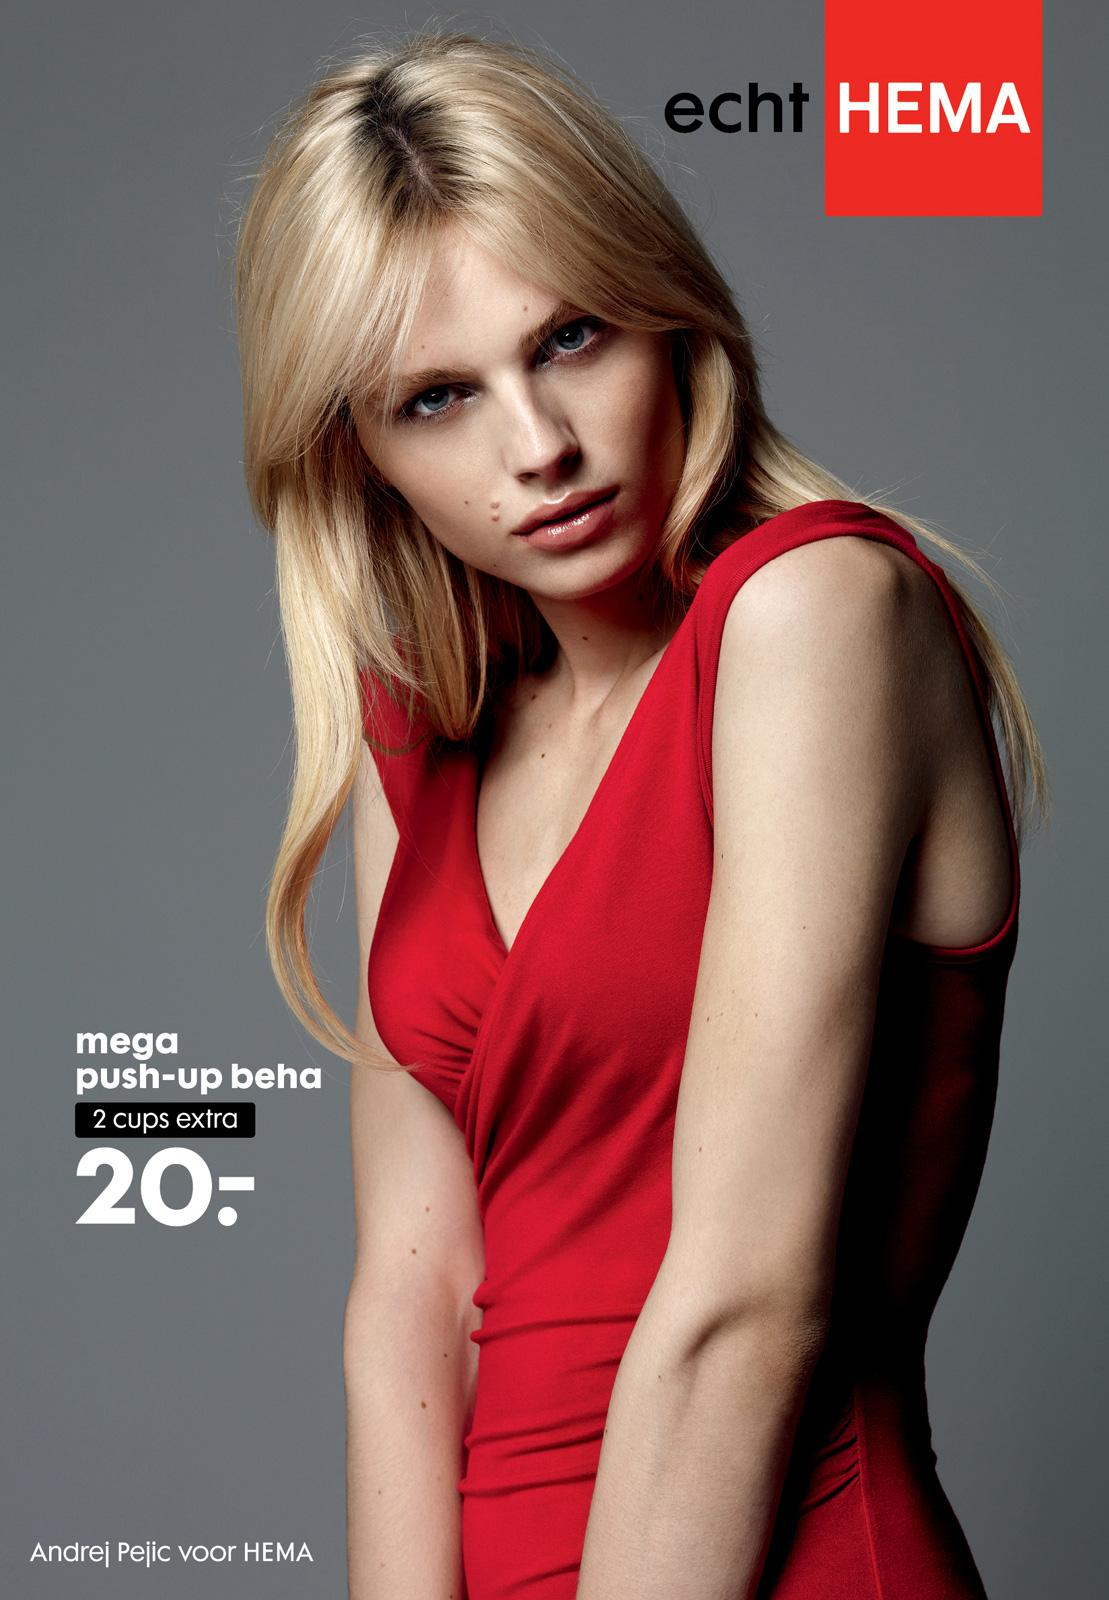 Hema Outdoor Ad -  Push-up bra modelled by Andej Pejic, 1